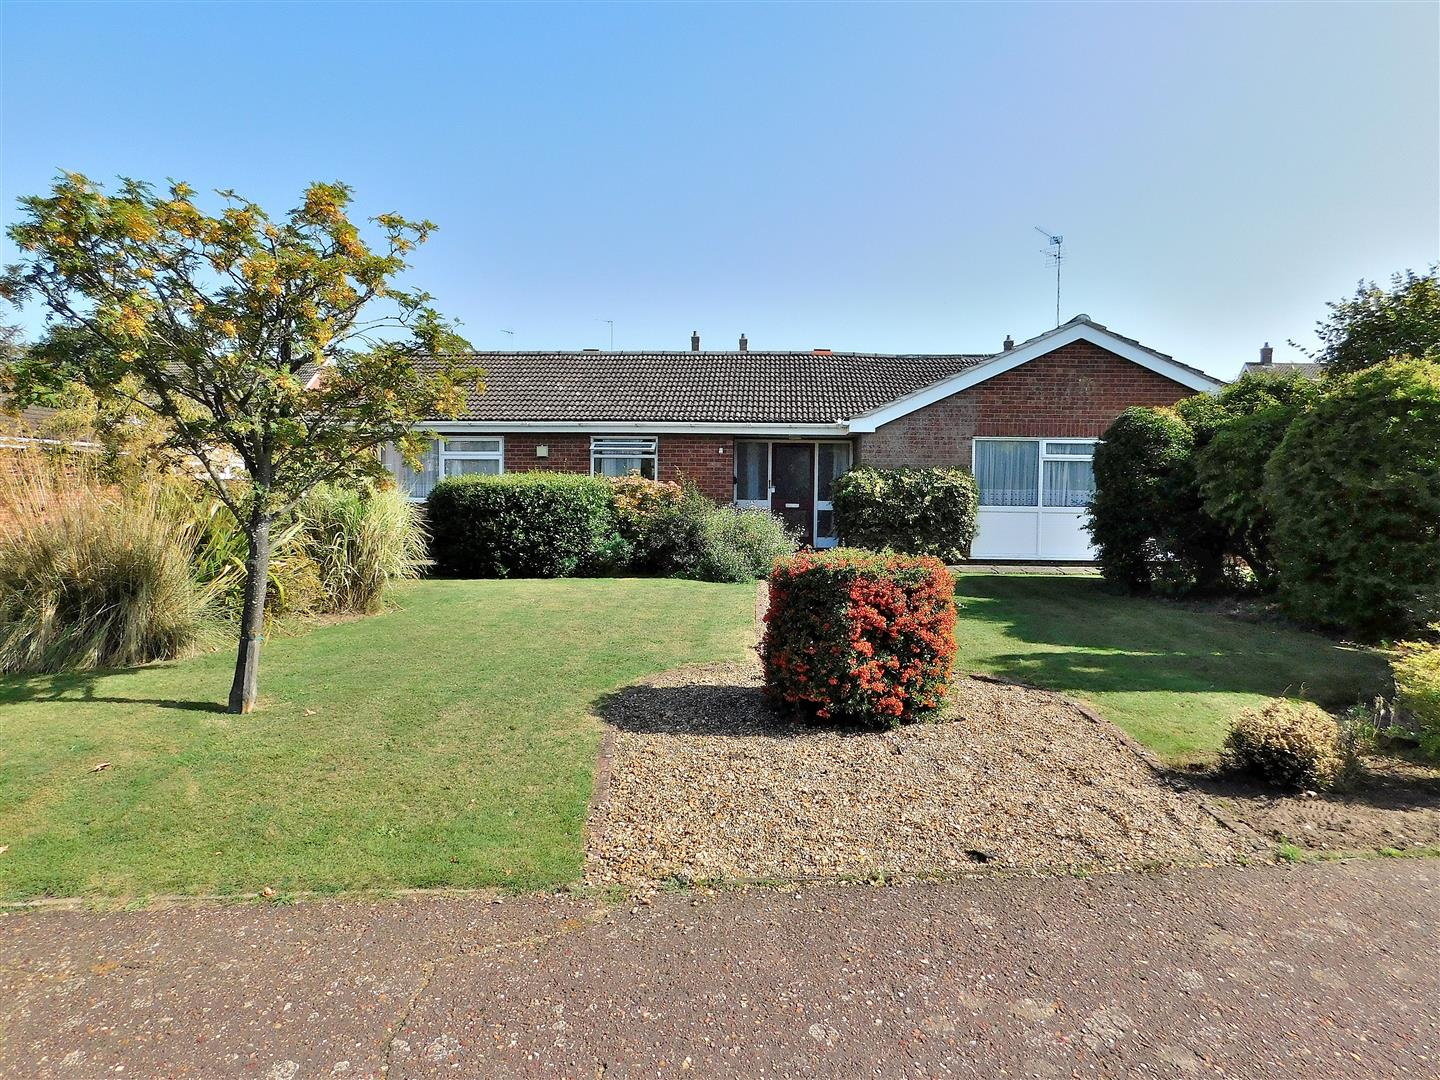 3 bed detached bungalow for sale in King's Lynn, PE30 3JS  - Property Image 1